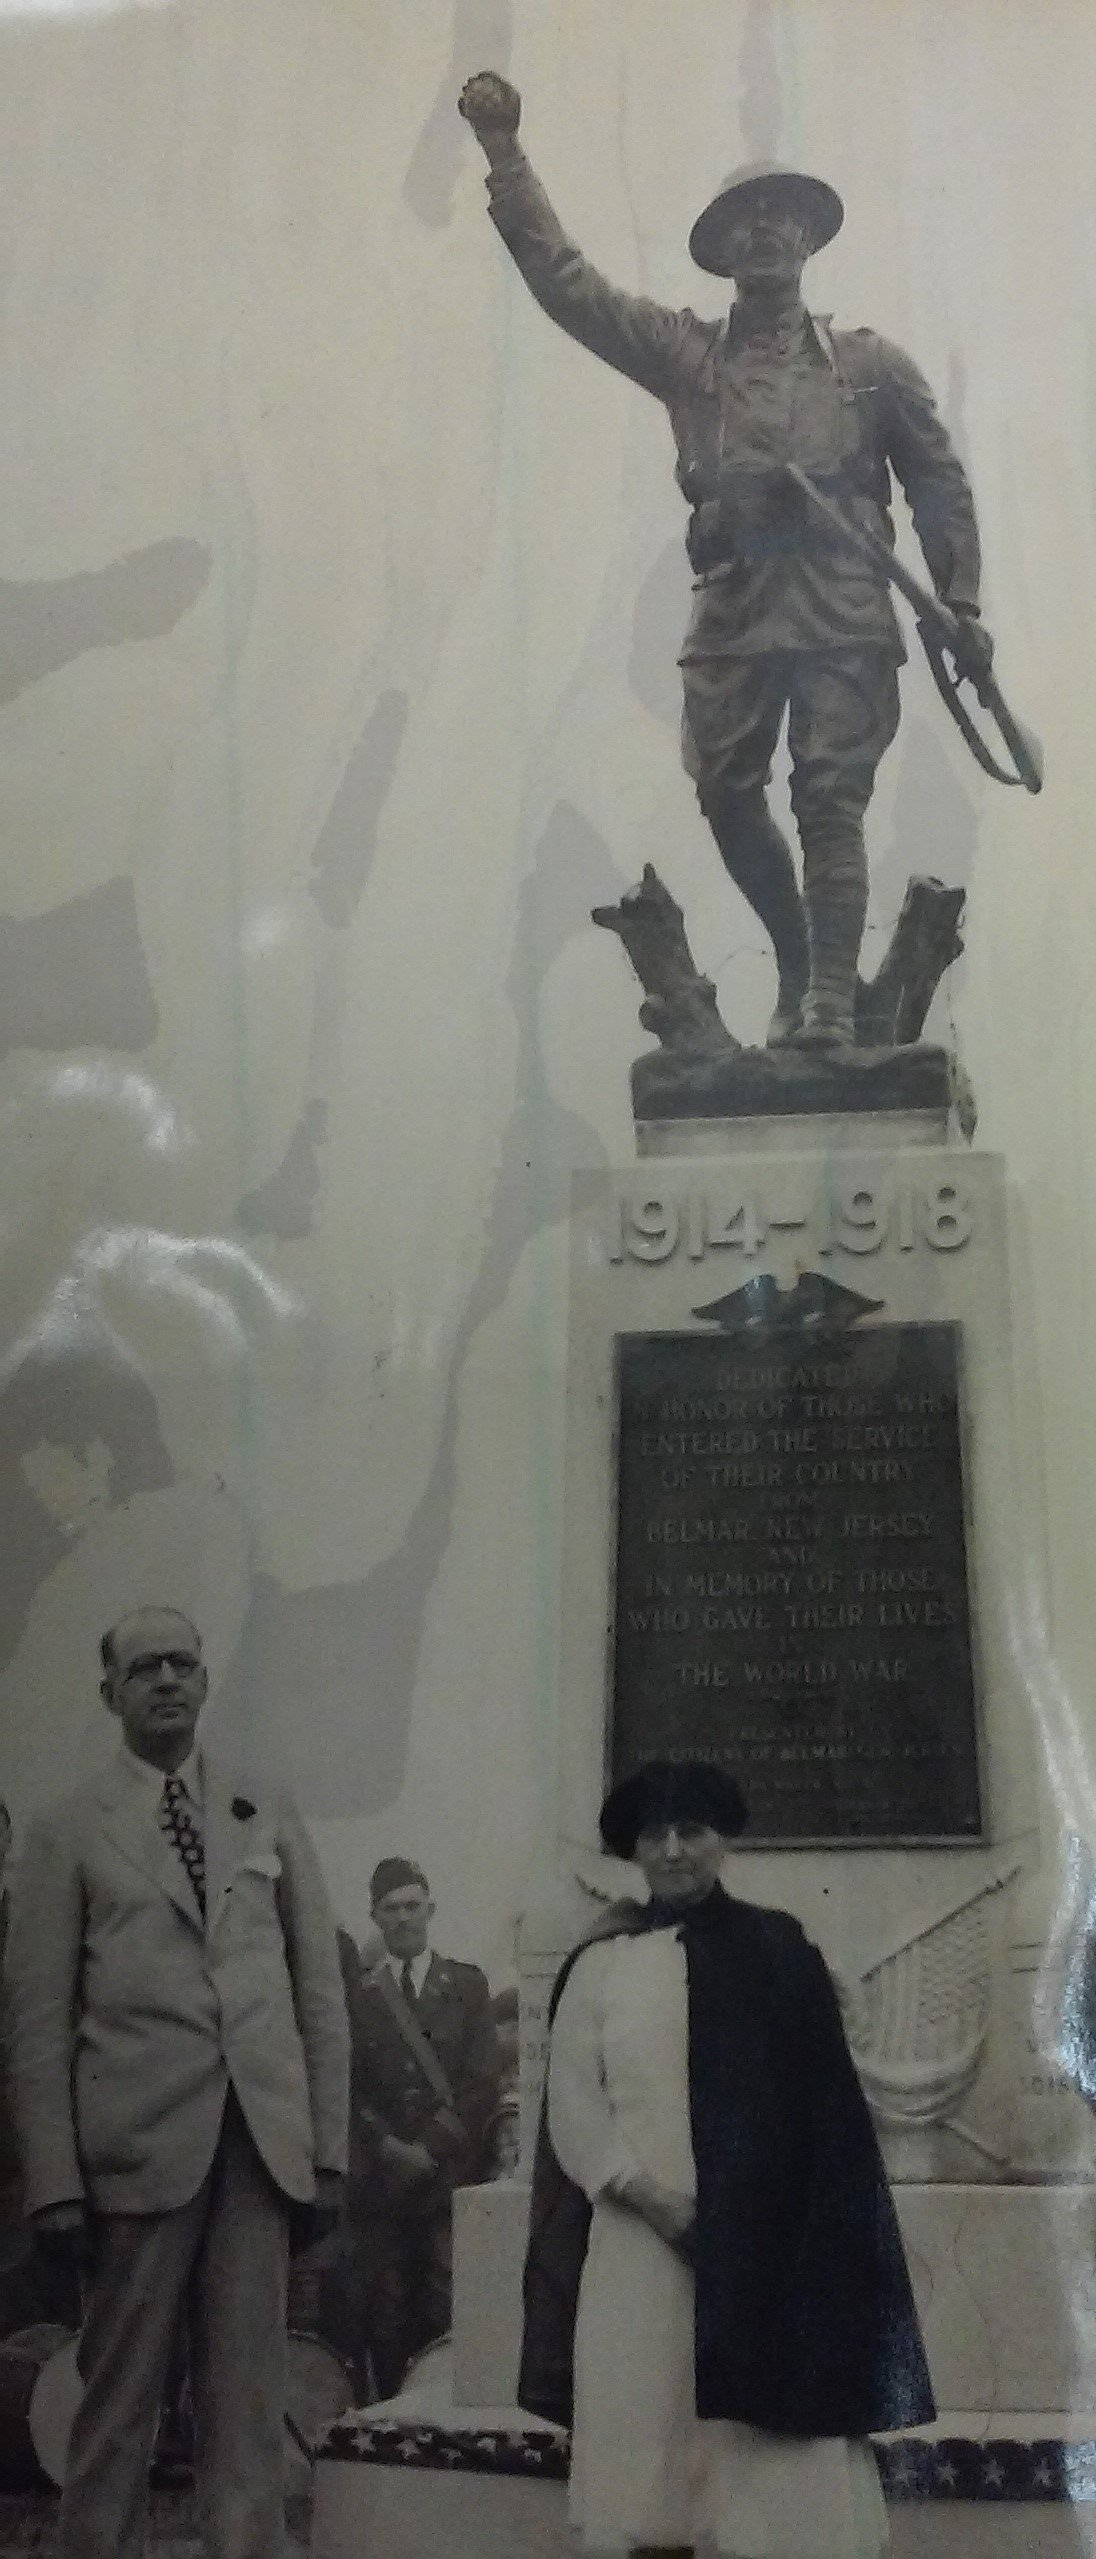 Image of the dedication of the statue in 1930.